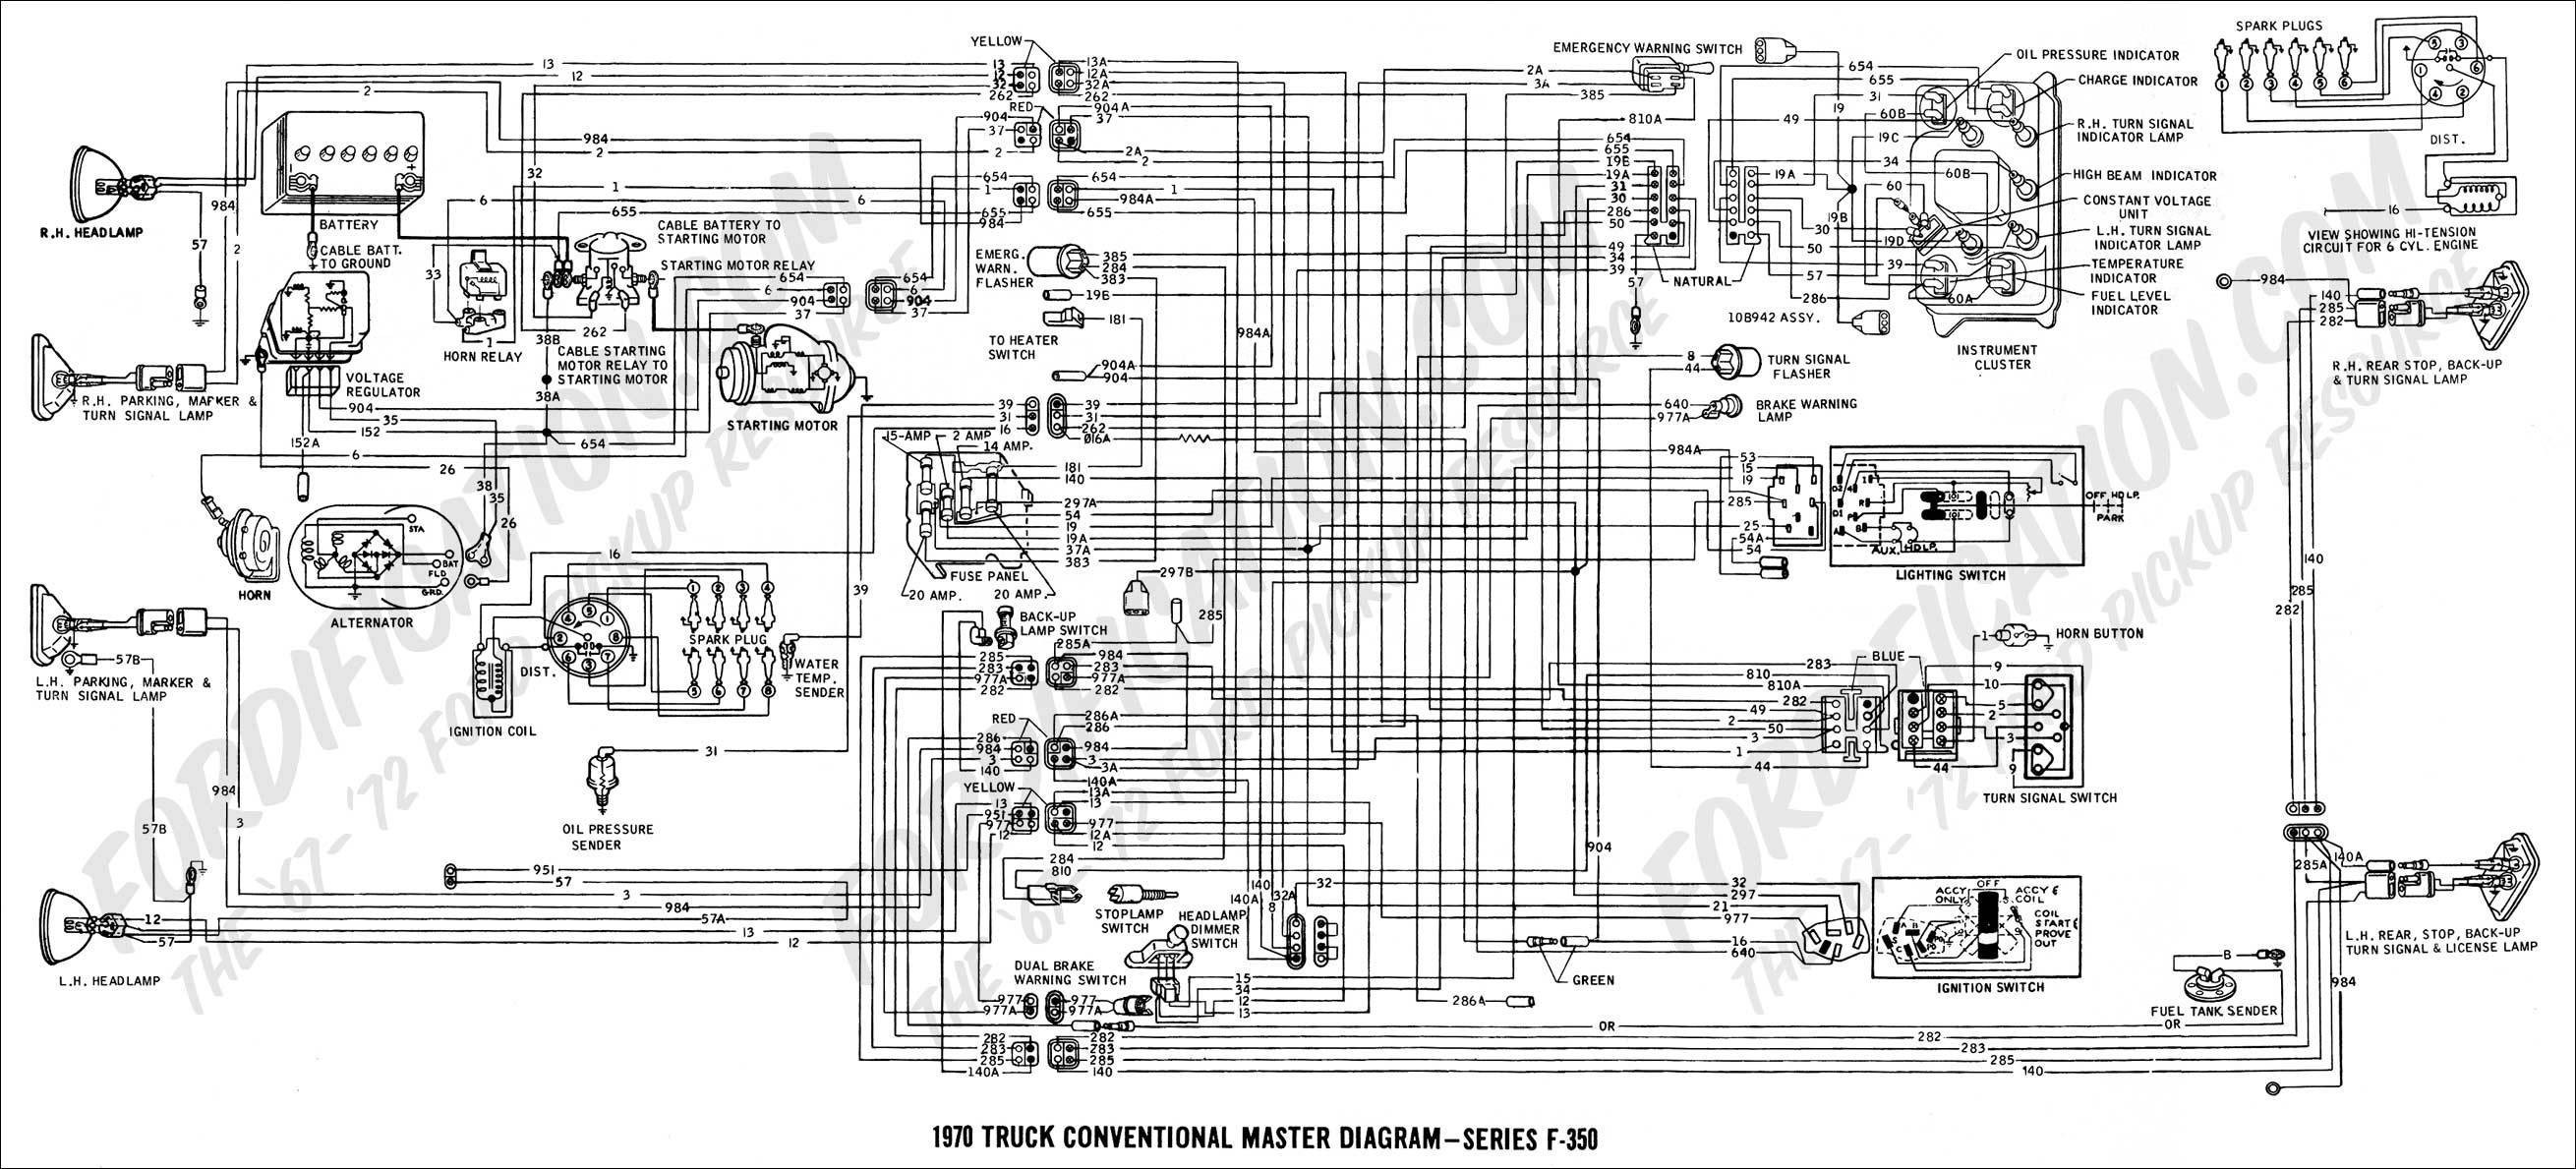 1986 ford mustang fuse box electrical work wiring diagram u2022 rh wiringdiagramshop today 1986 ford mustang gt fuse box diagram